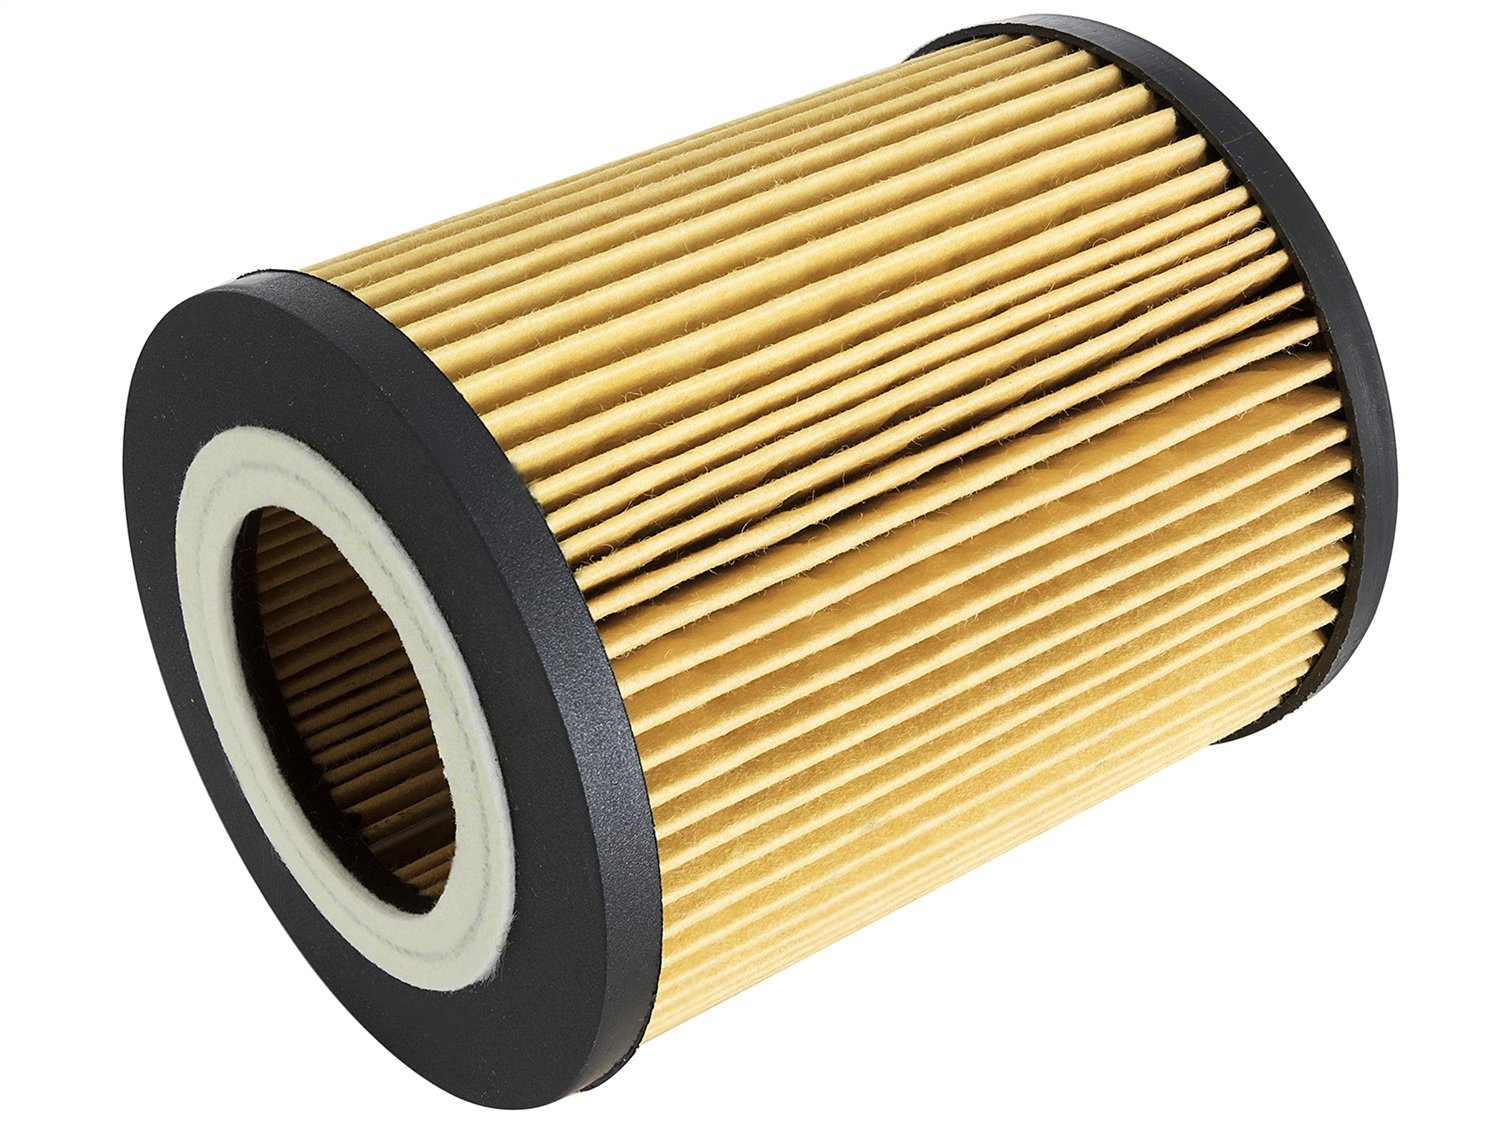 AFE Filters 44-LF022-MB Pro GUARD D2 Oil Filter Cartridge Style Filter w/Built-In Seal 4 Pack Pro GUARD D2 Oil Filter